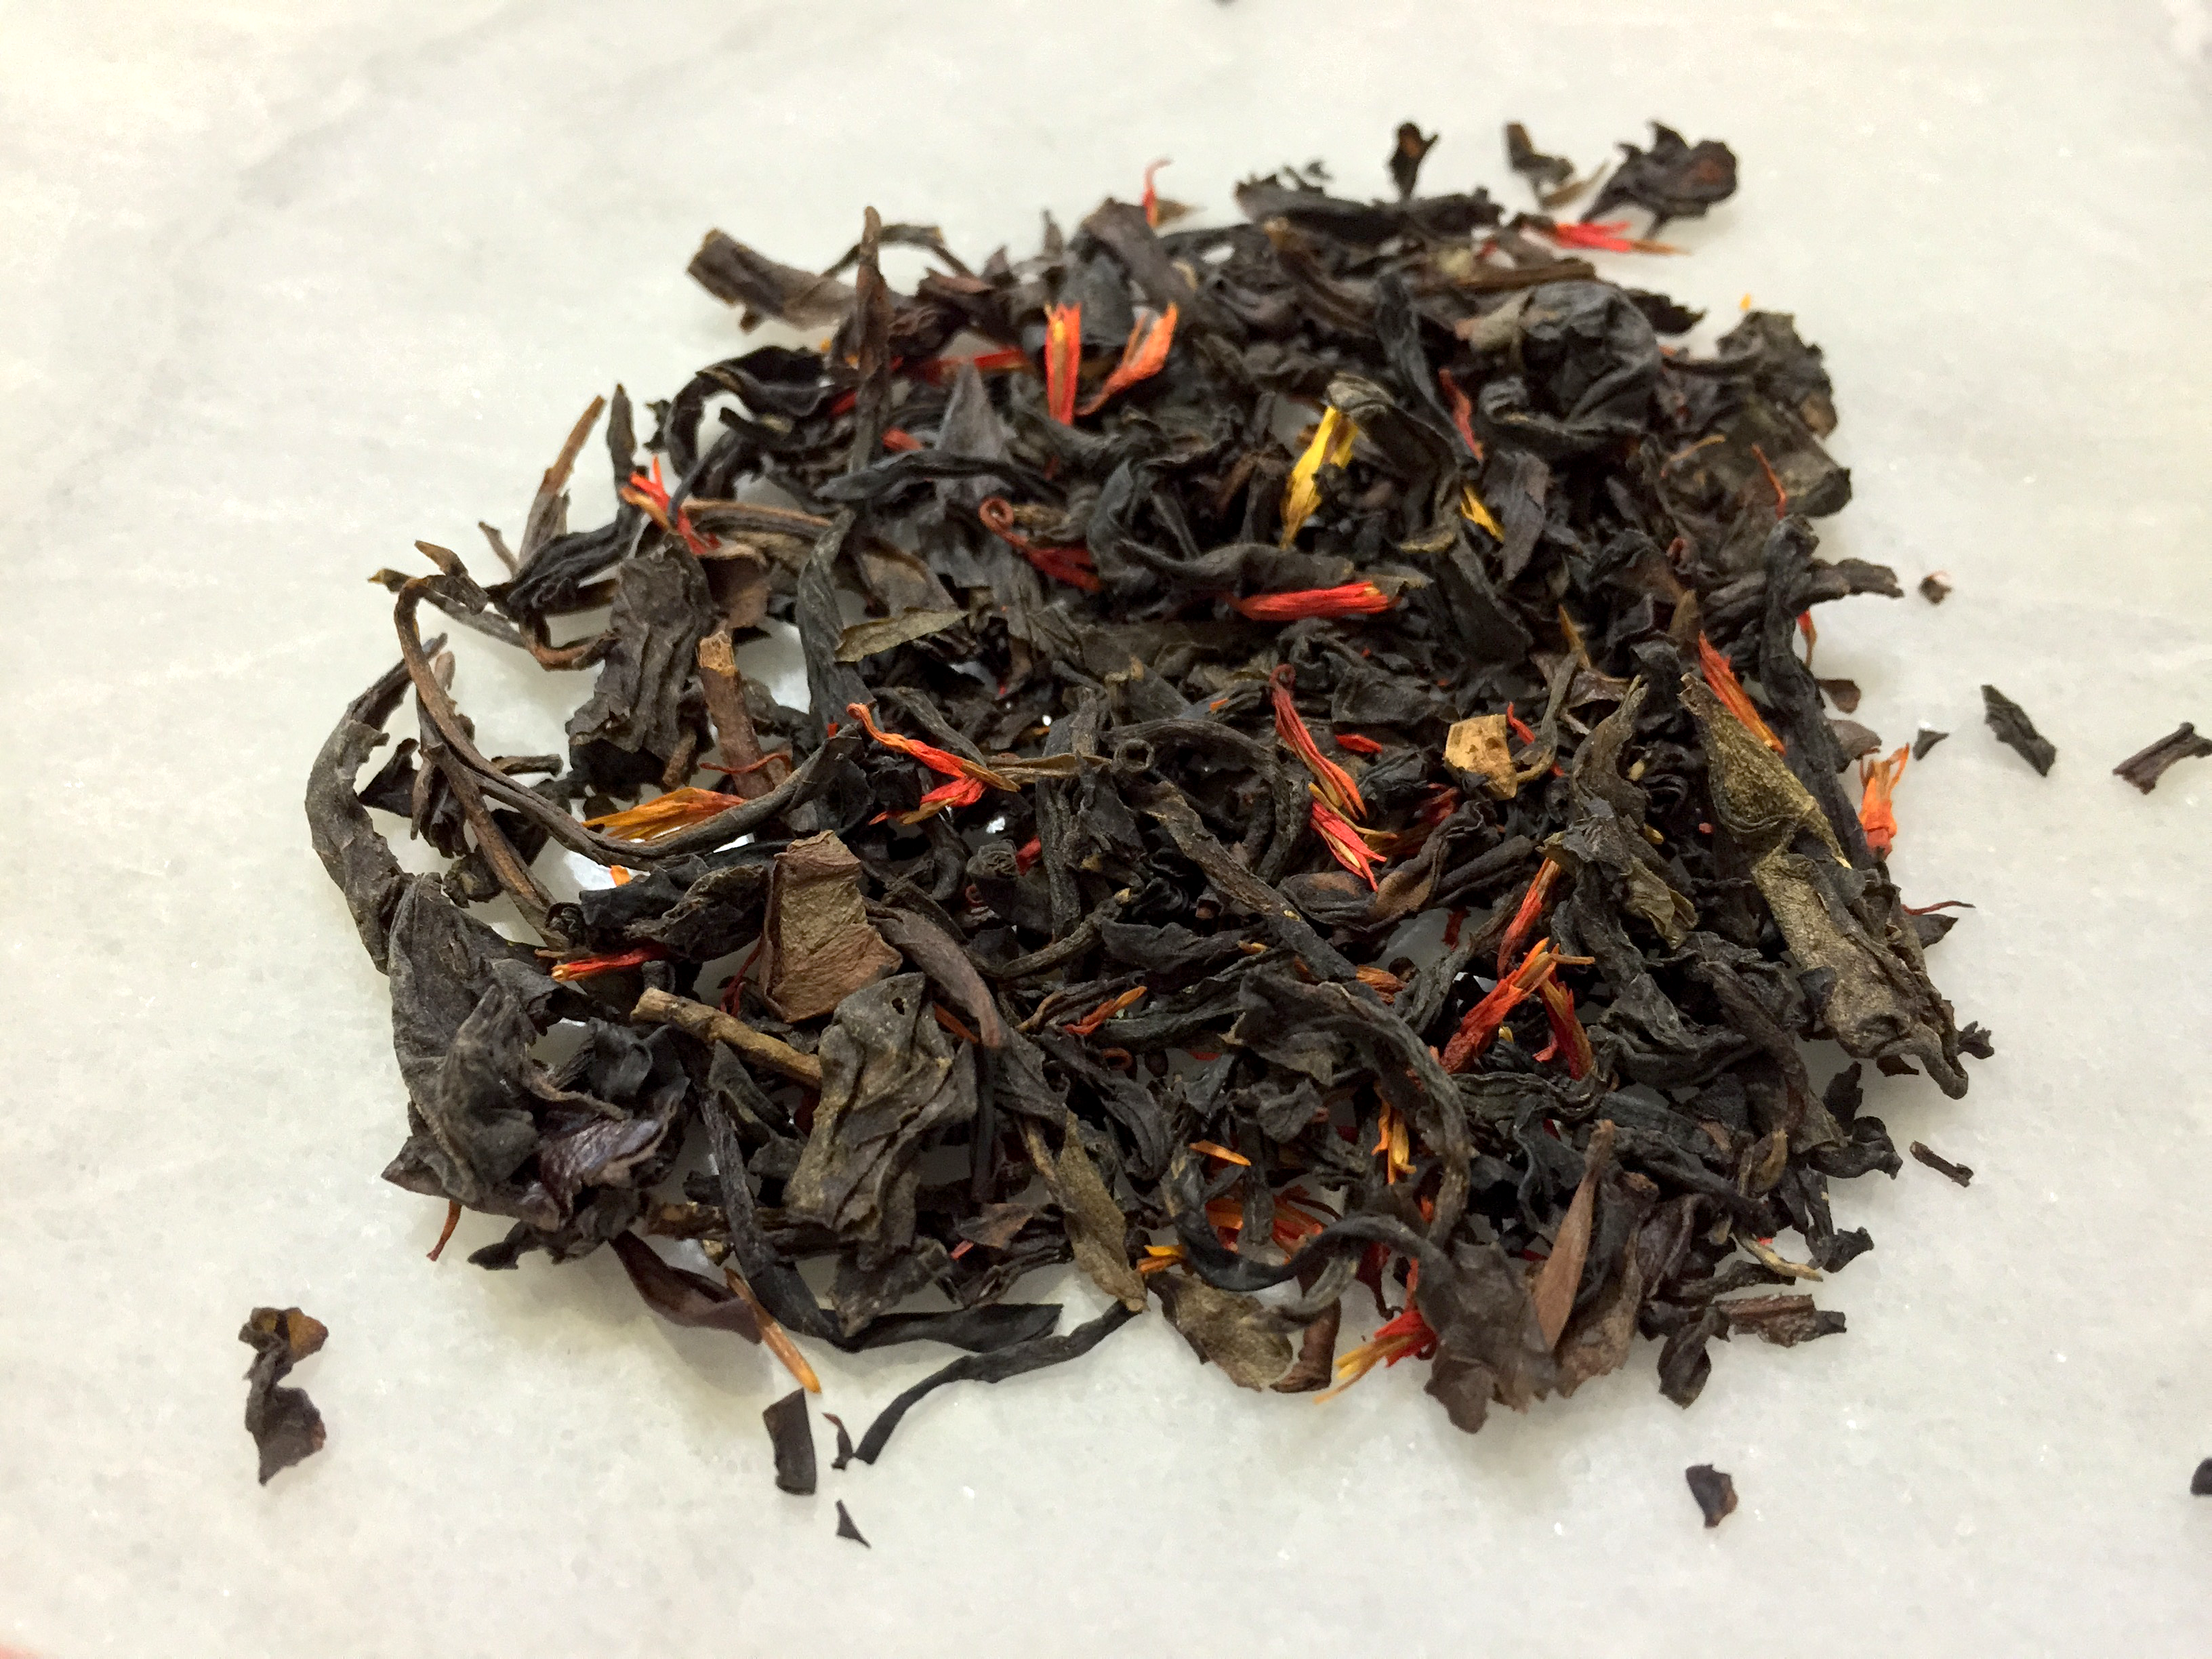 Pomegranate Oolong Loose Leaf by Jocilyn Mors is licensed under a Creative Commons Attribution 4.0 International License.